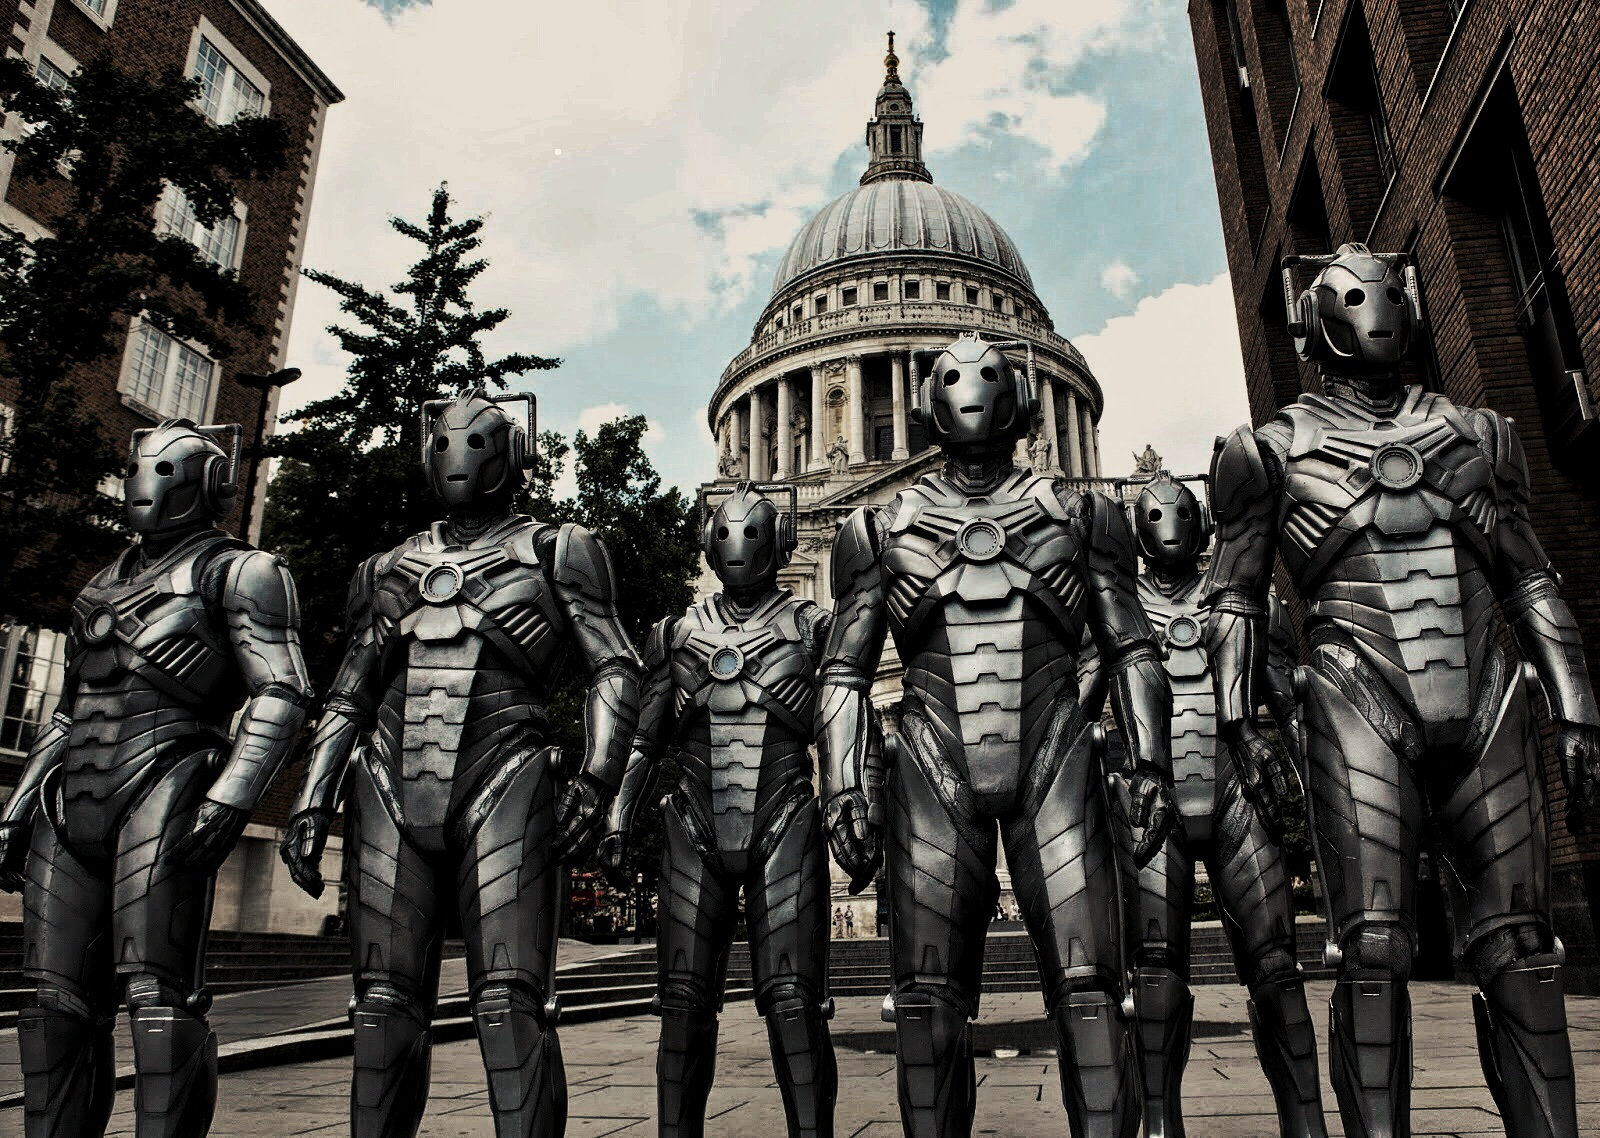 cyberman-edited